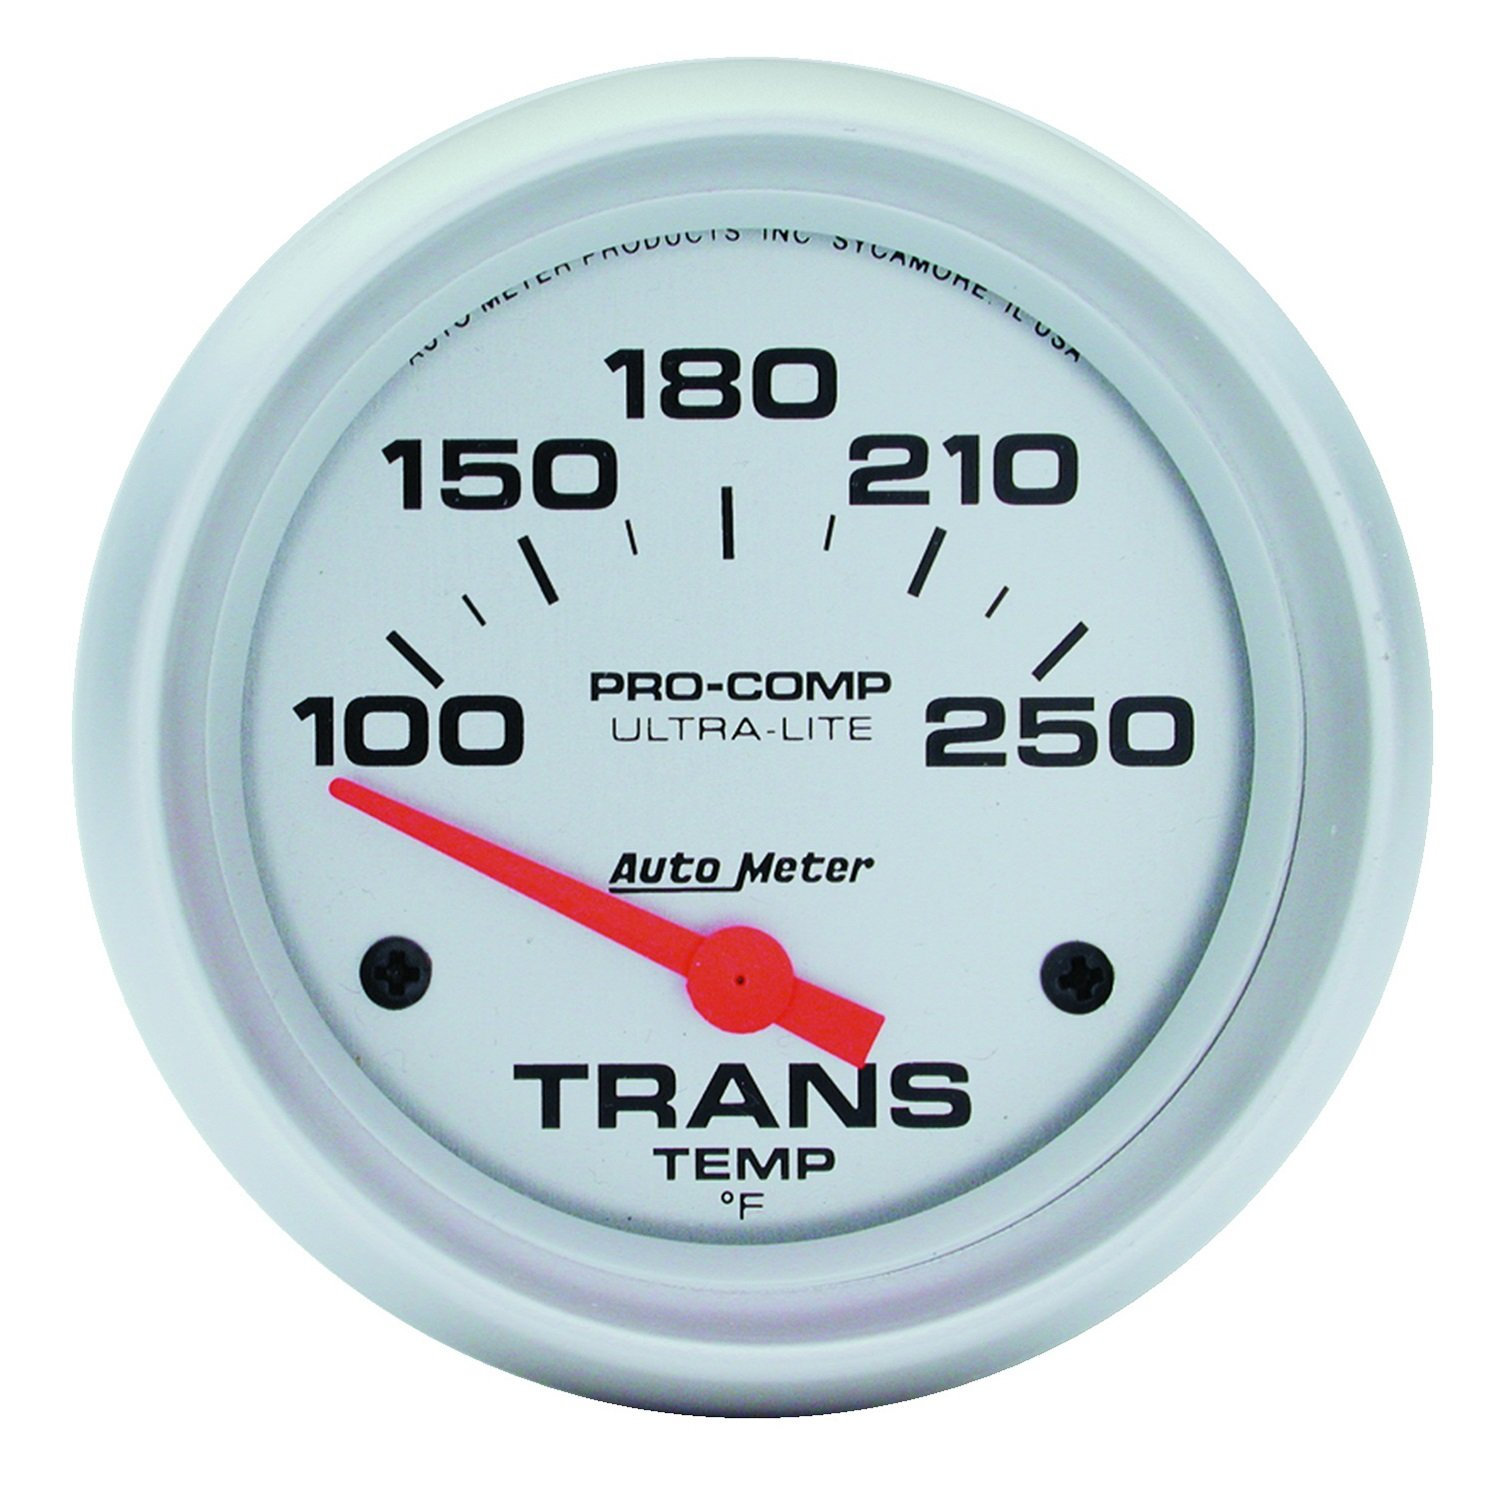 Auto Meter 4457 Ultra-Lite Electric Transmission Temperature Gauge by Auto Meter